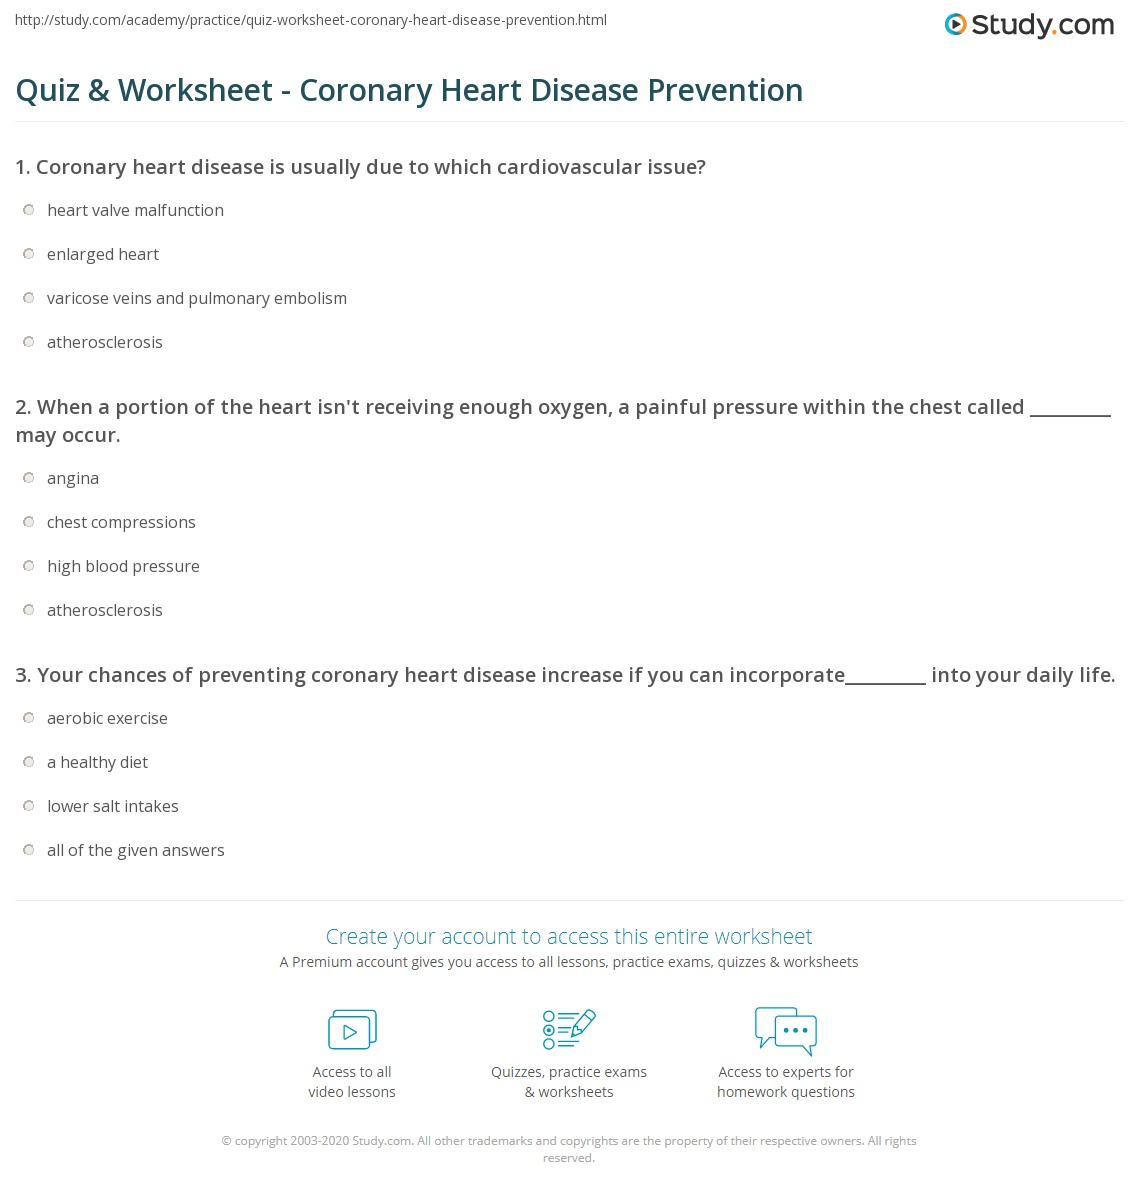 quiz & worksheet - coronary heart disease prevention | study